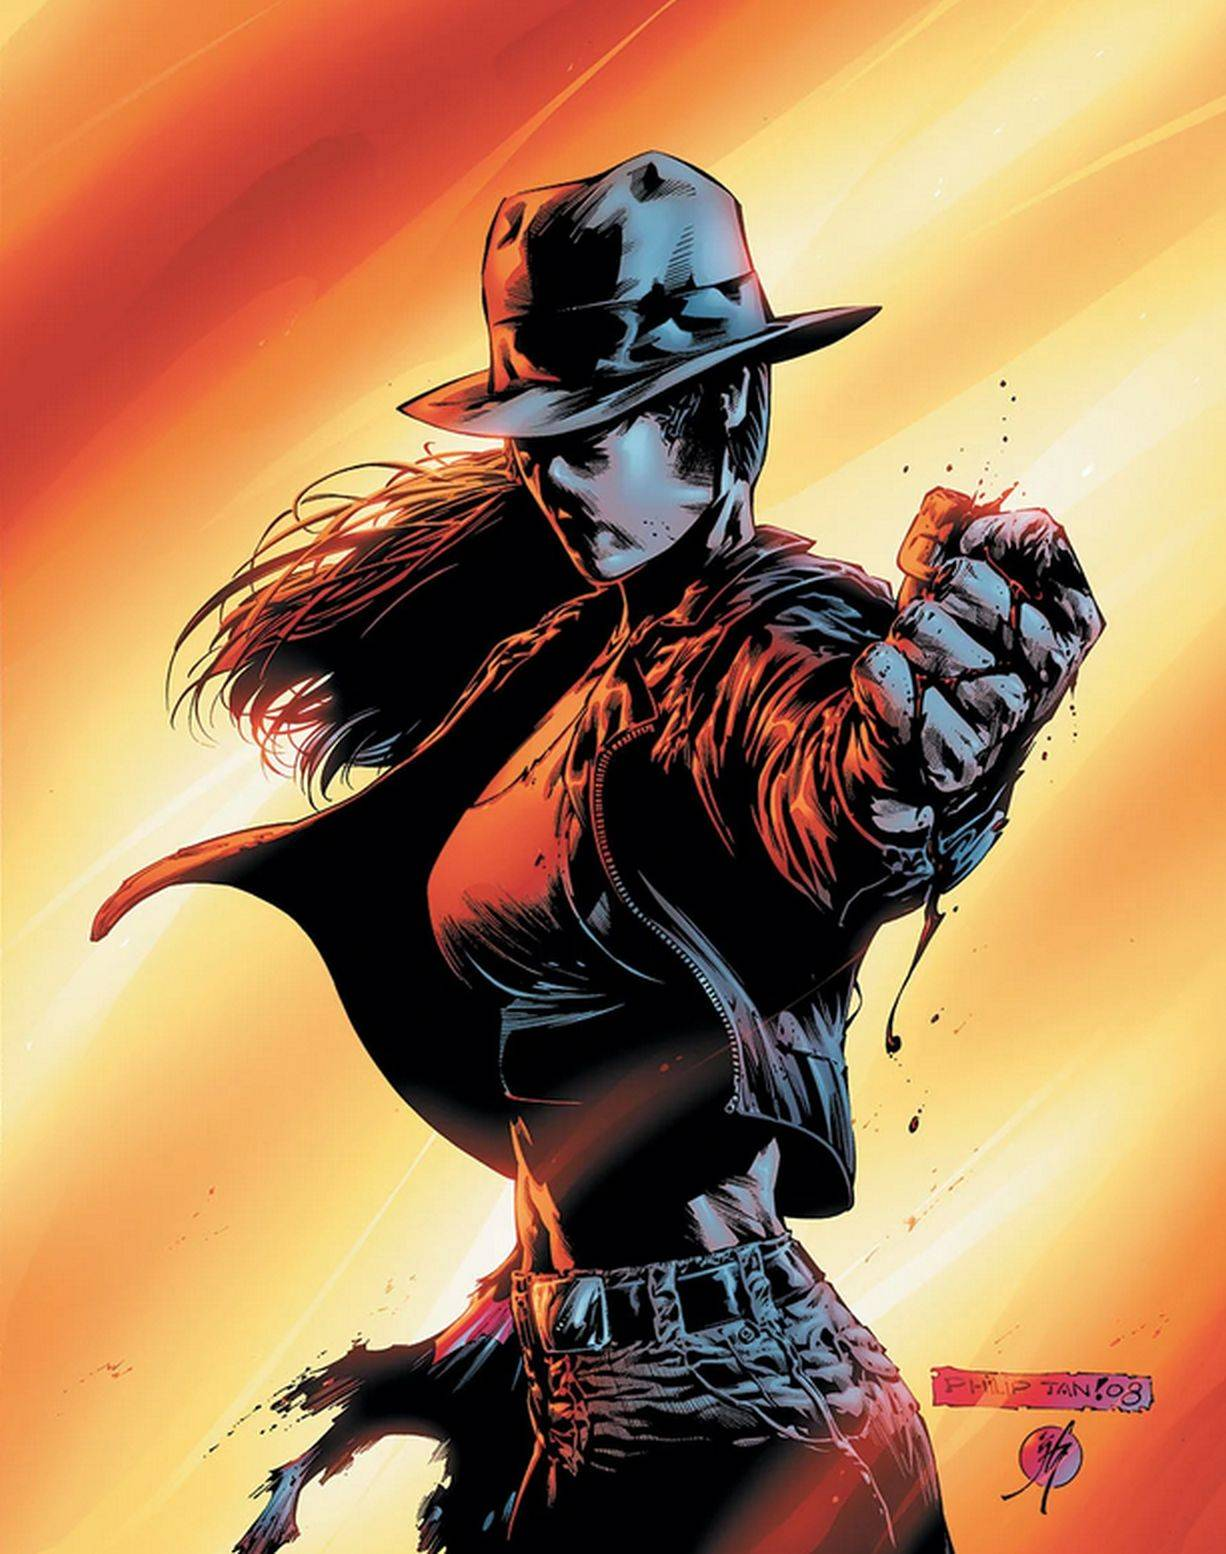 Renee started out as a detective with GCPD before eventually becoming The Question.